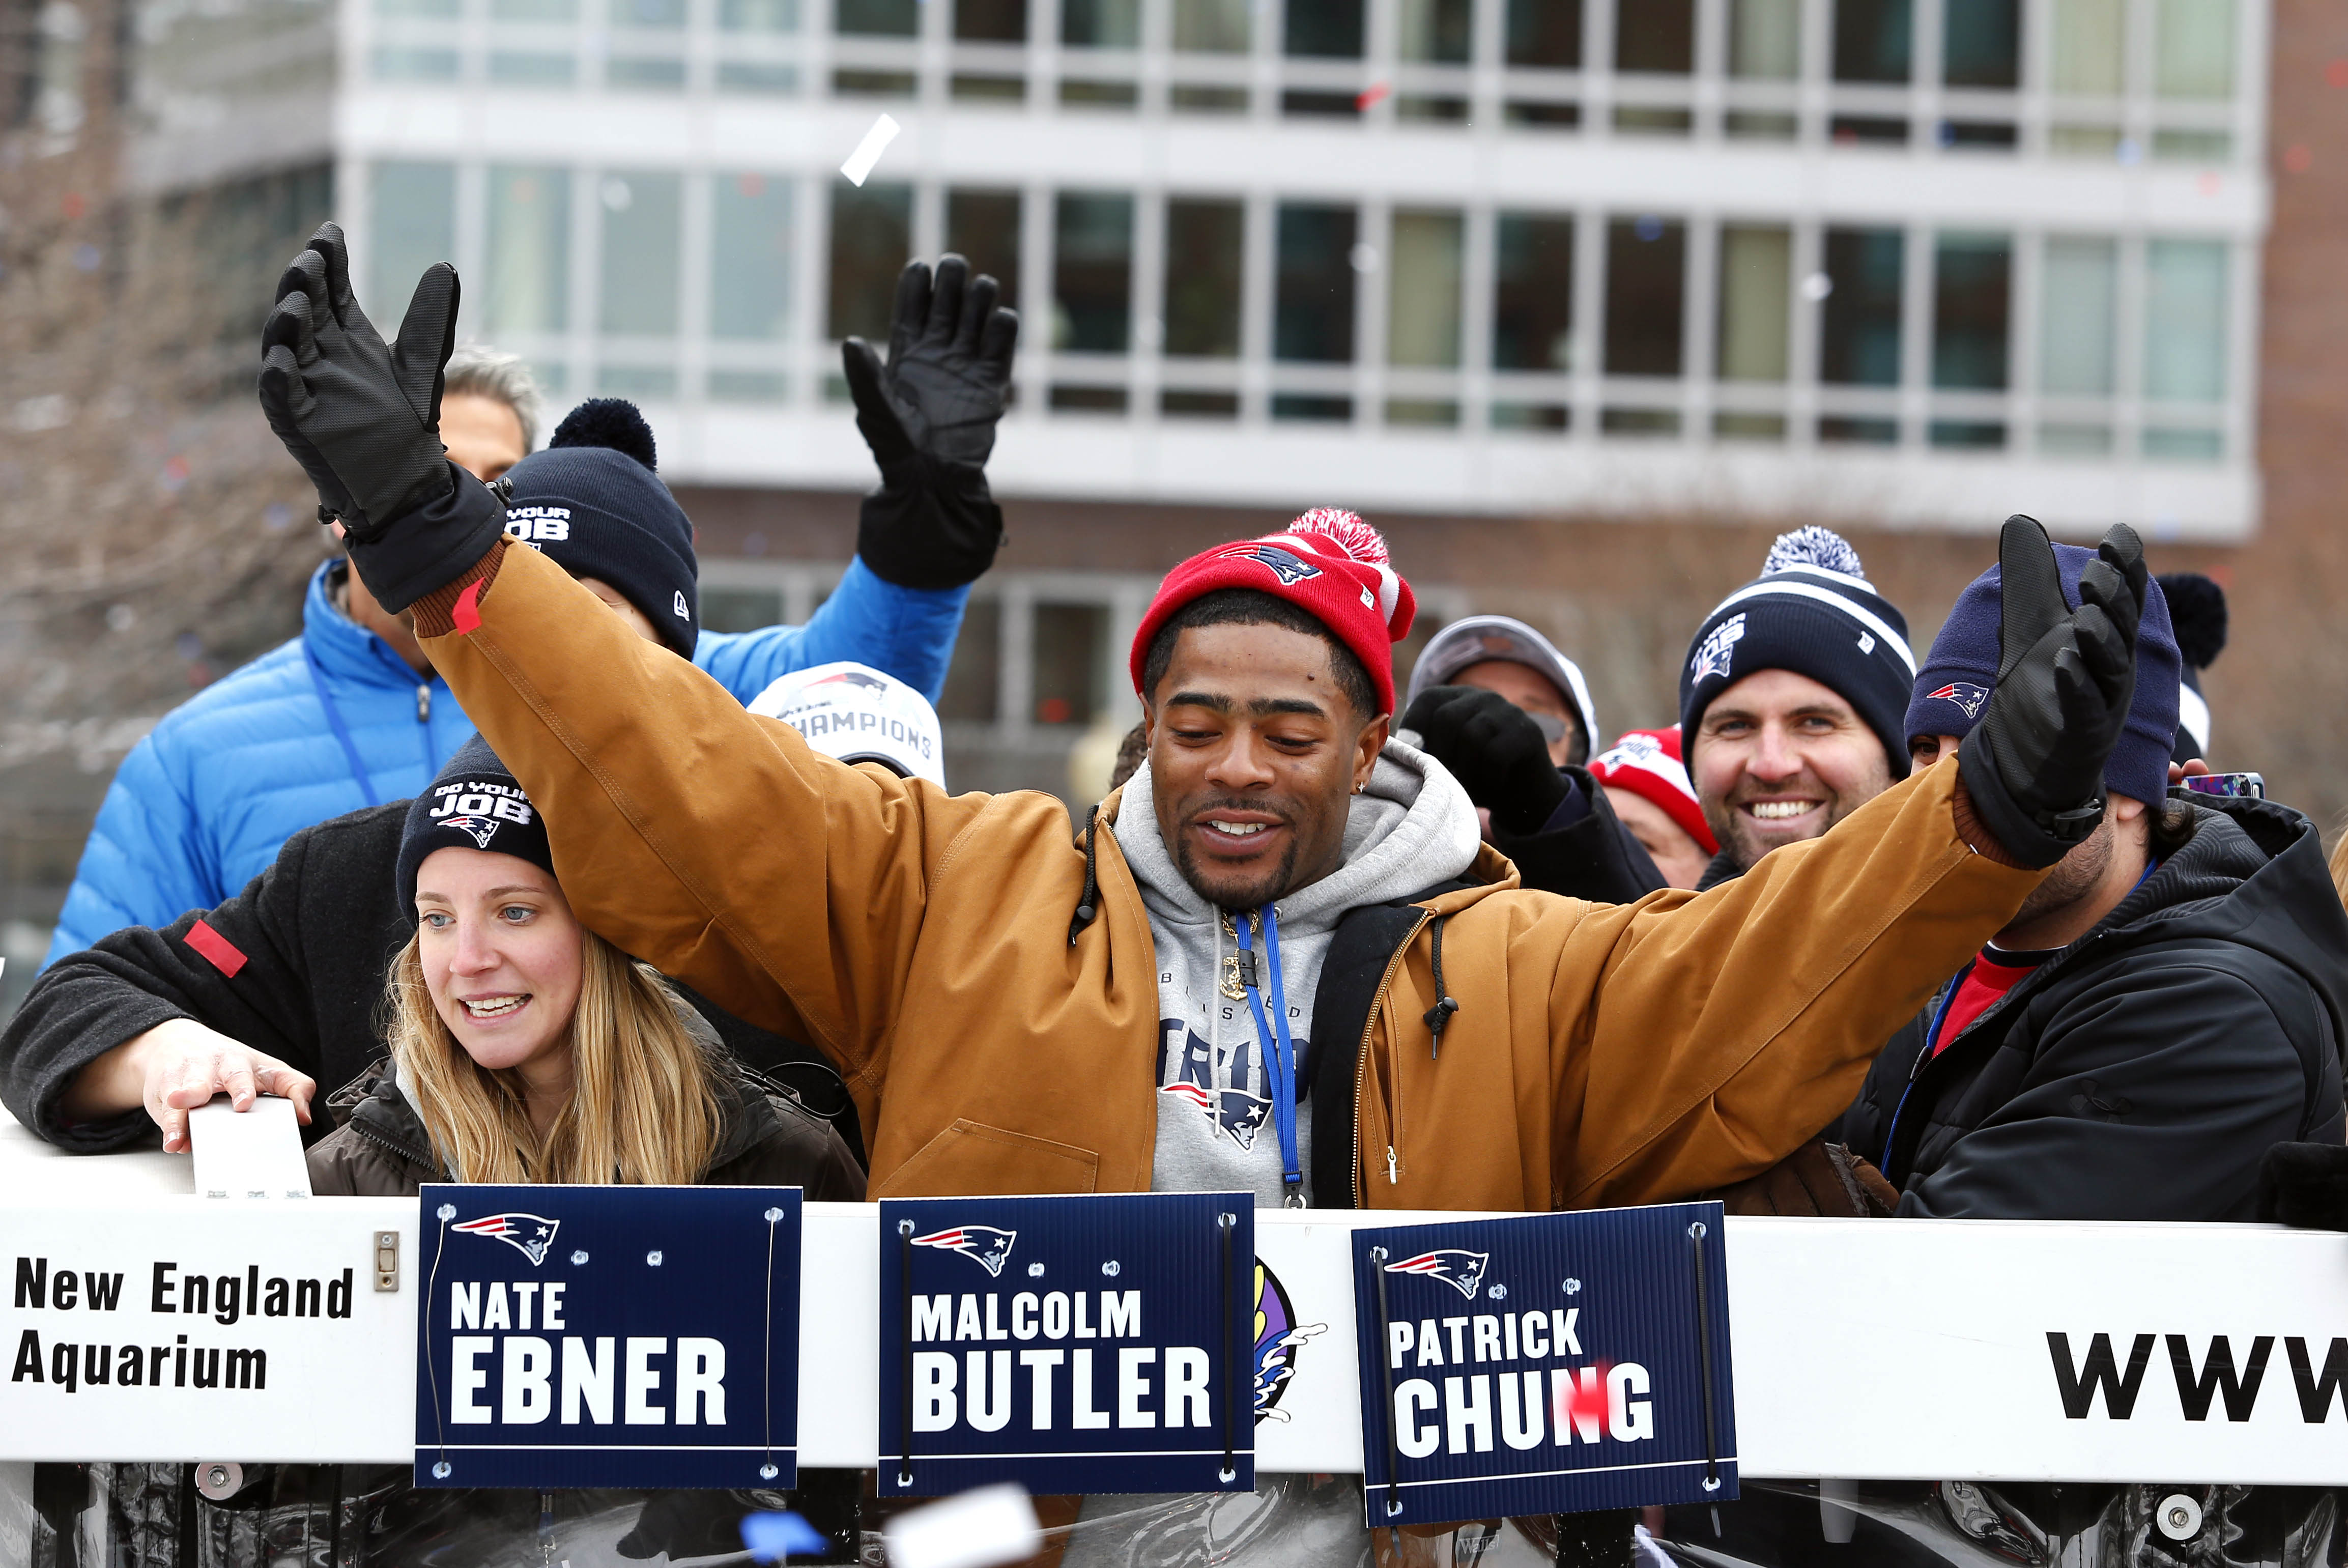 New England safety Malcolm Butler, whose final-minute pass interception sealed the victory for his team, celebrates with parade spectators, Feb. 4, 2015,